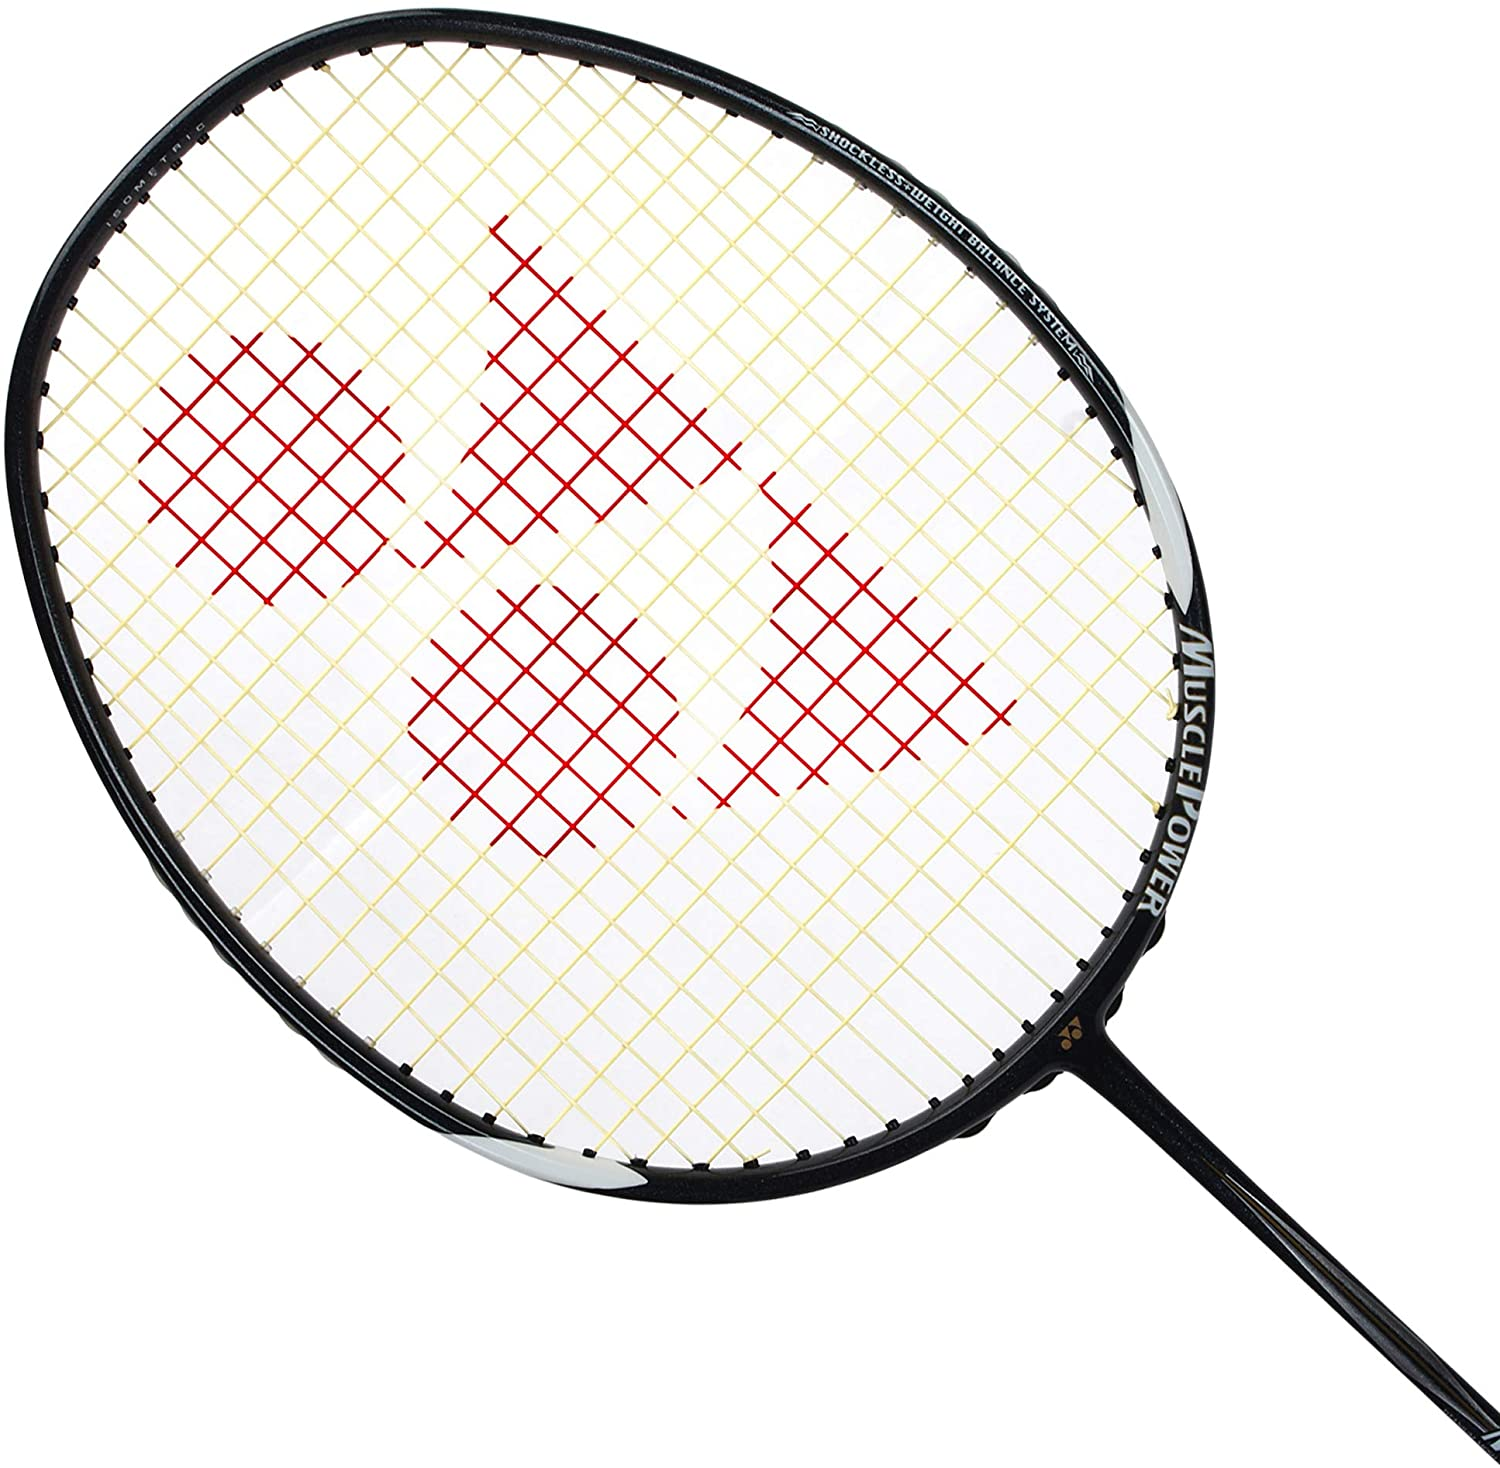 Yonex Badminton Racket Muscle Power Series